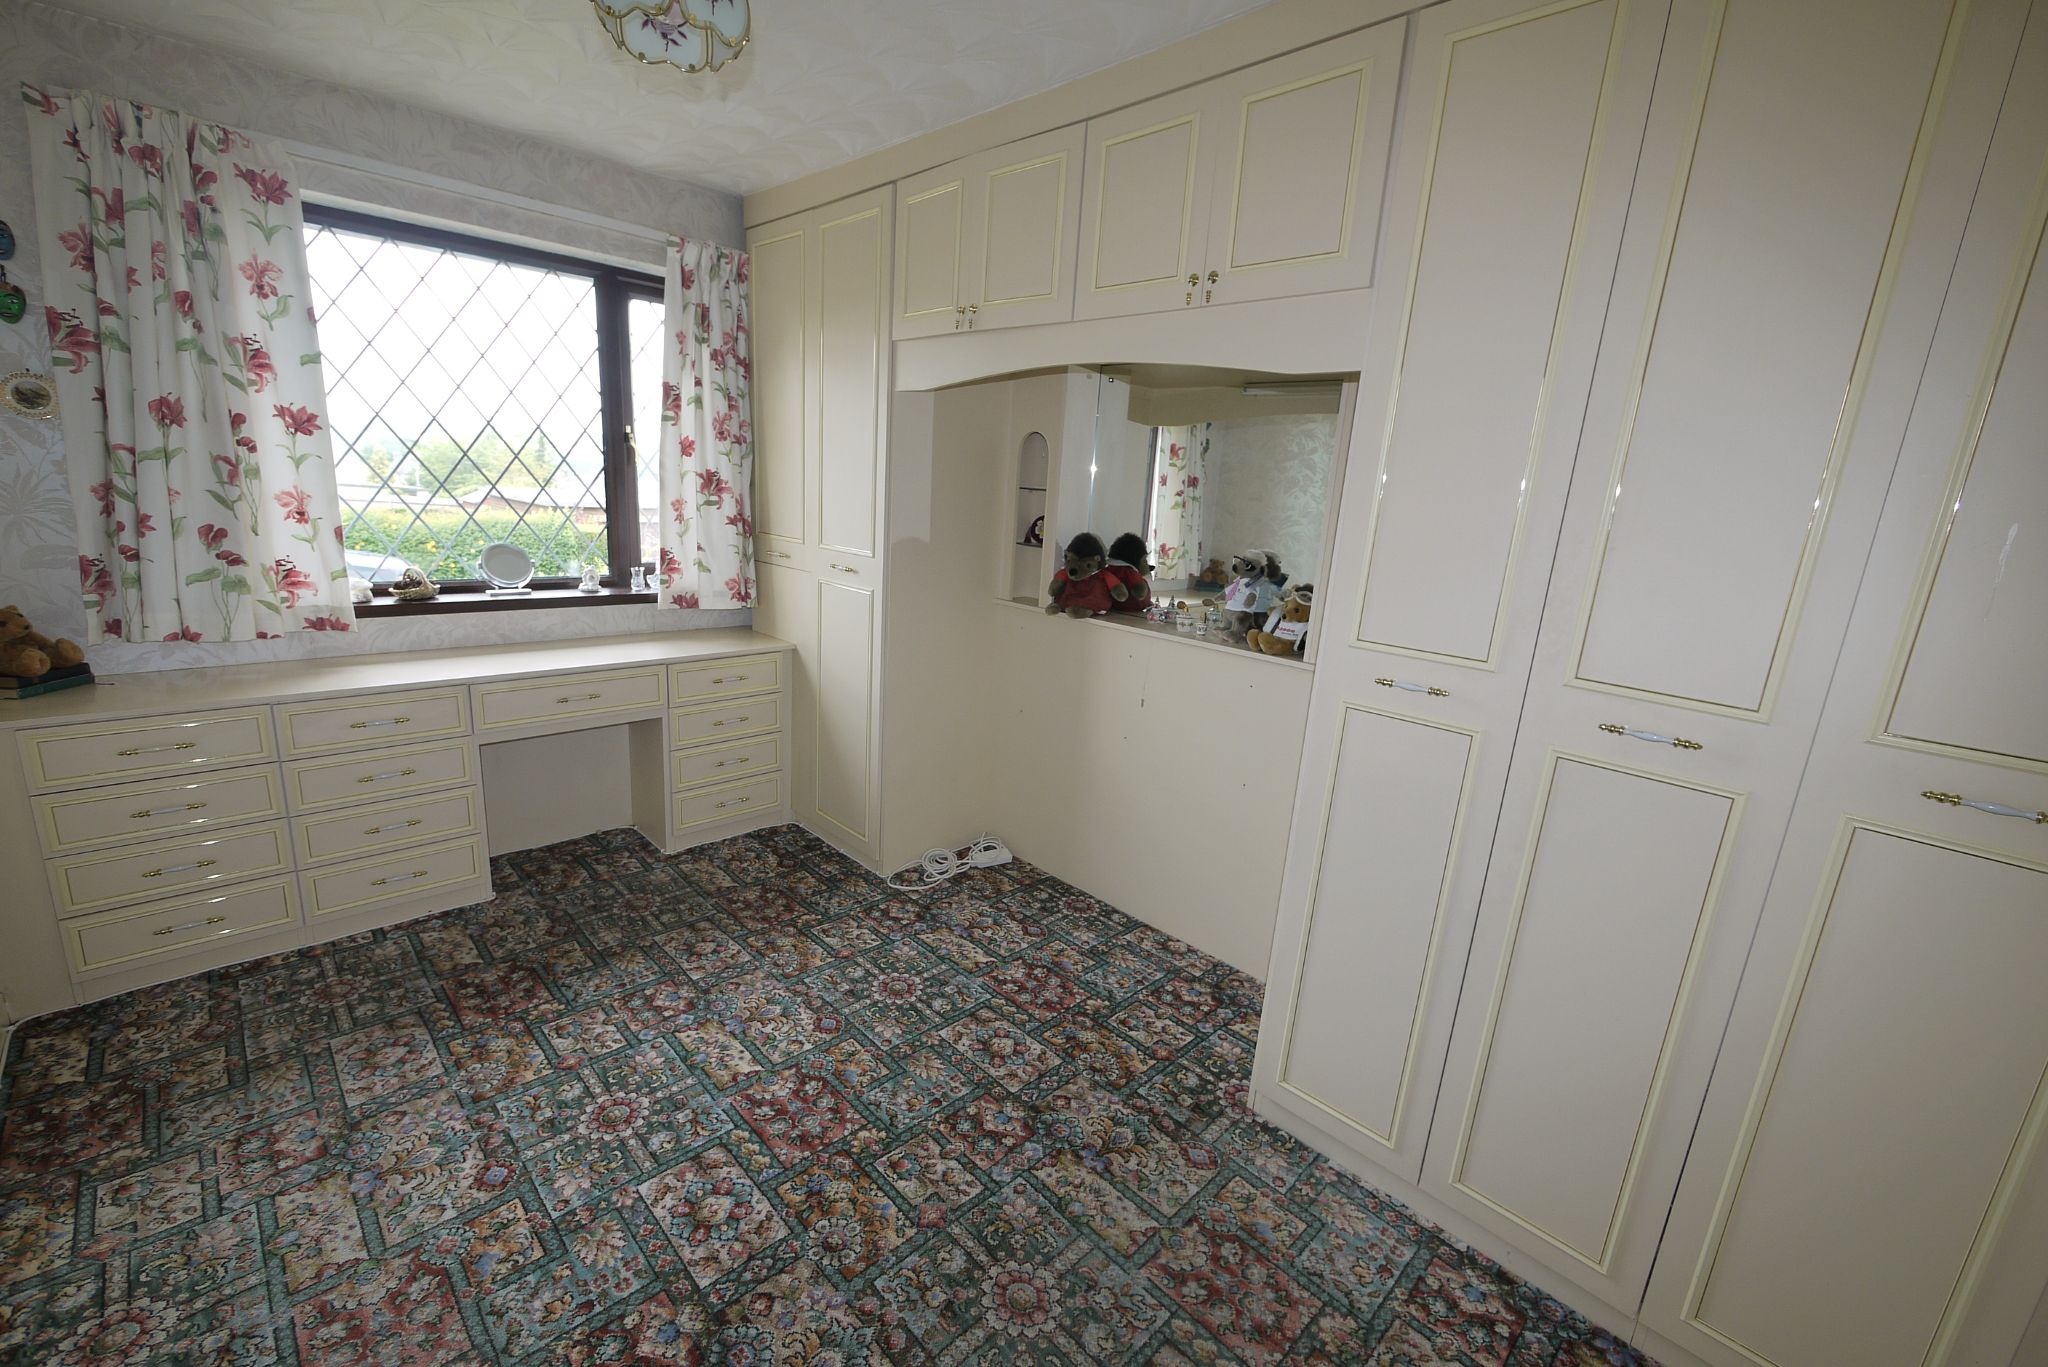 3 bedroom semi-detached bungalow SSTC in Brighouse - Photograph 7.